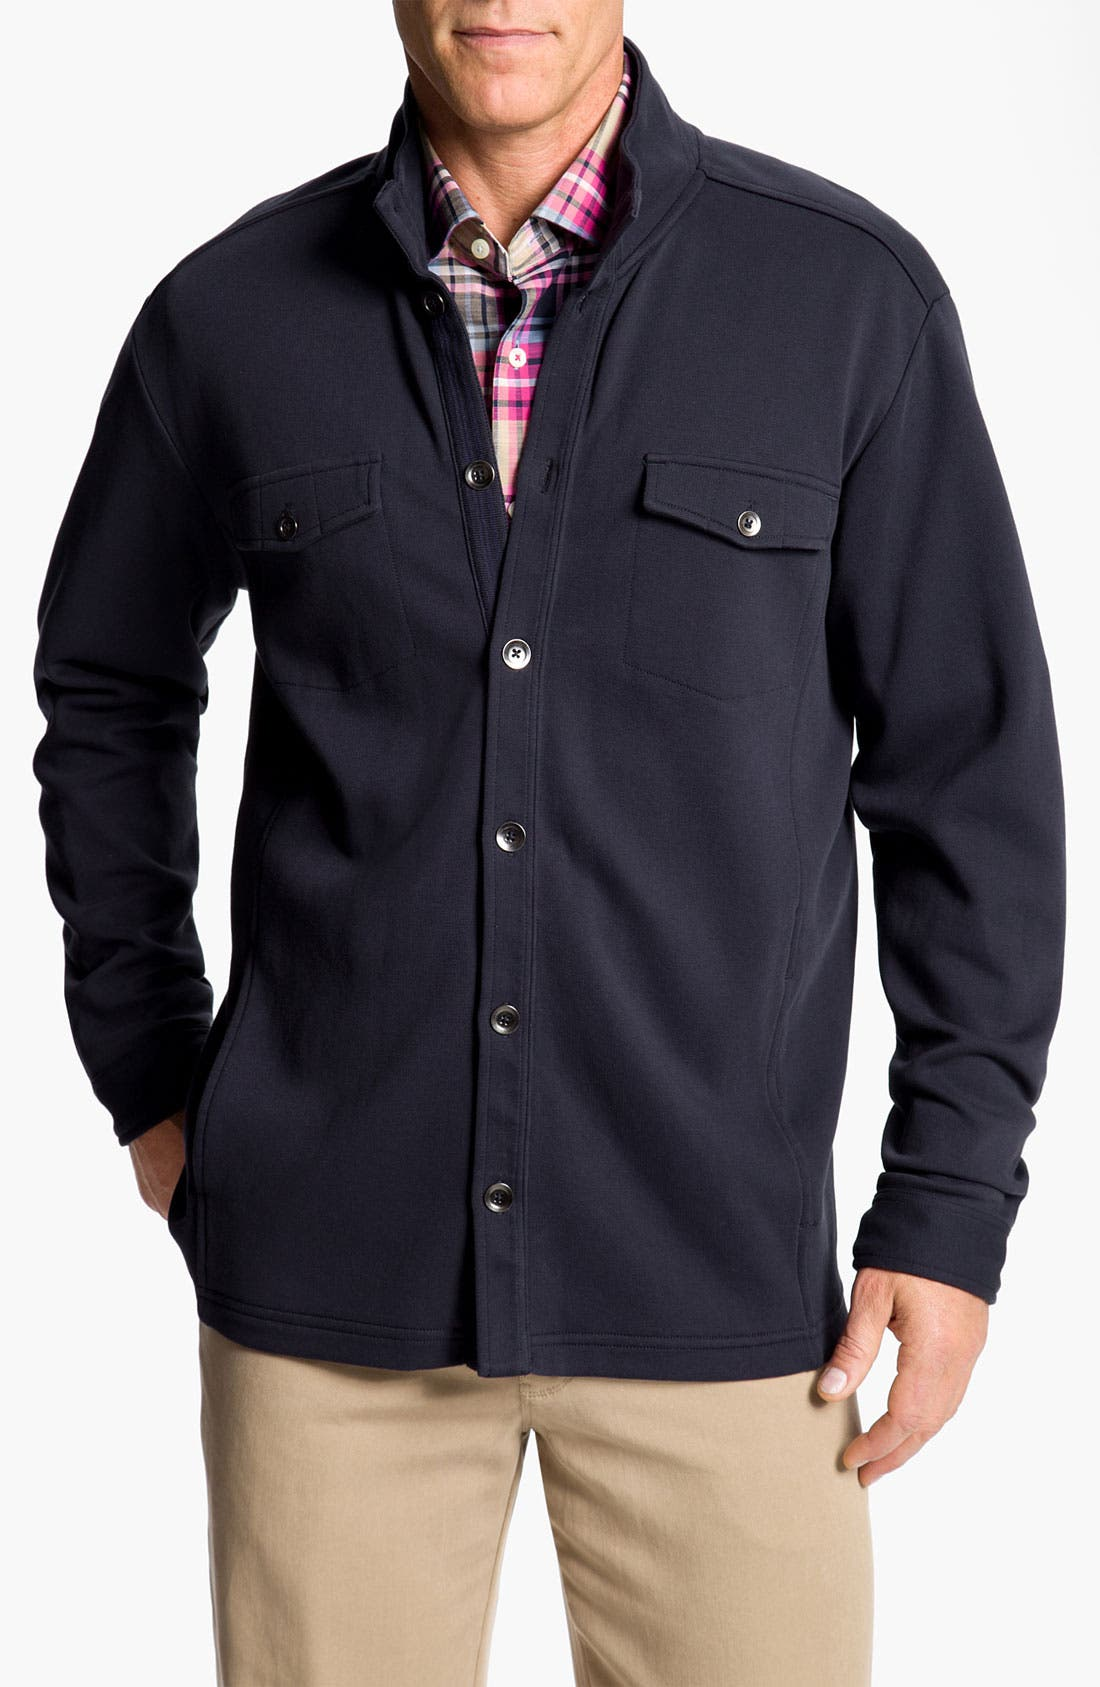 Alternate Image 1 Selected - Tommy Bahama 'Pima Paseo' Jacket